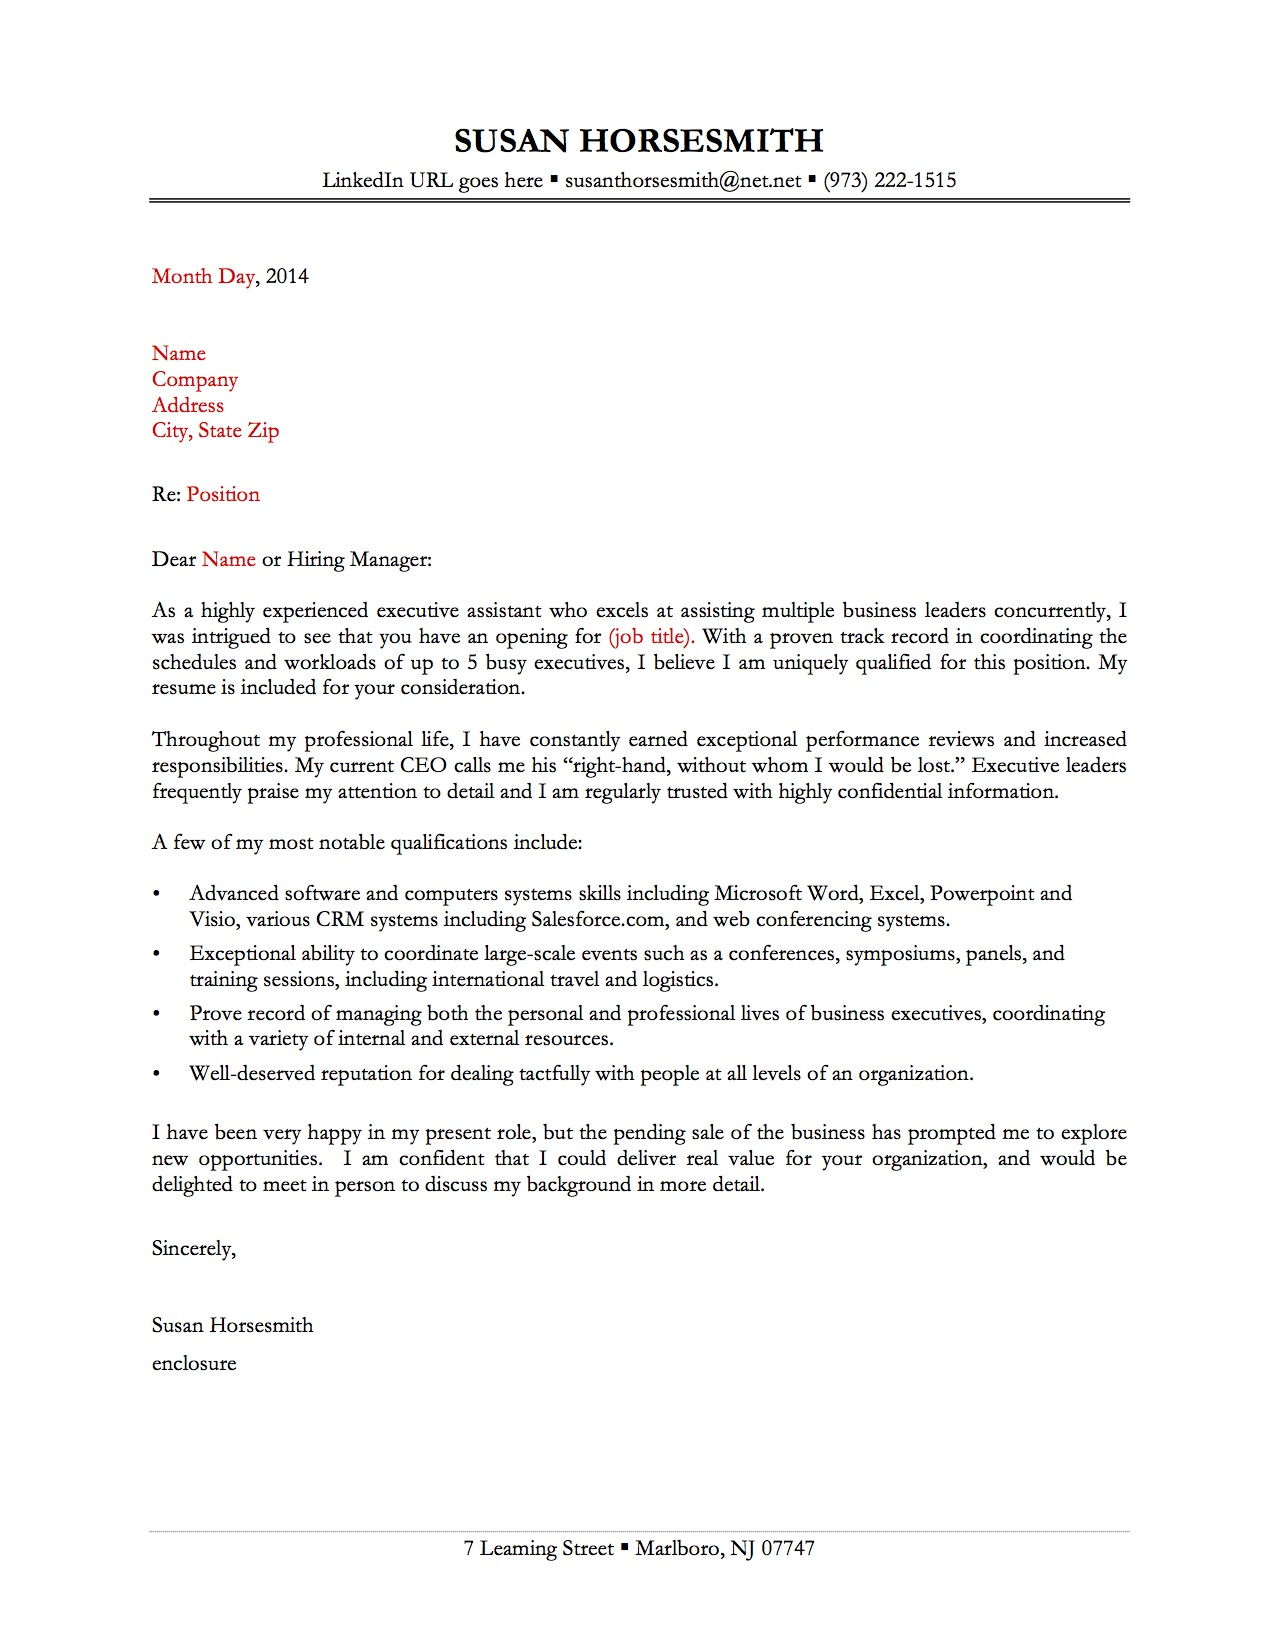 Sample Cover Letter 1  Great Cover Letters For Resumes